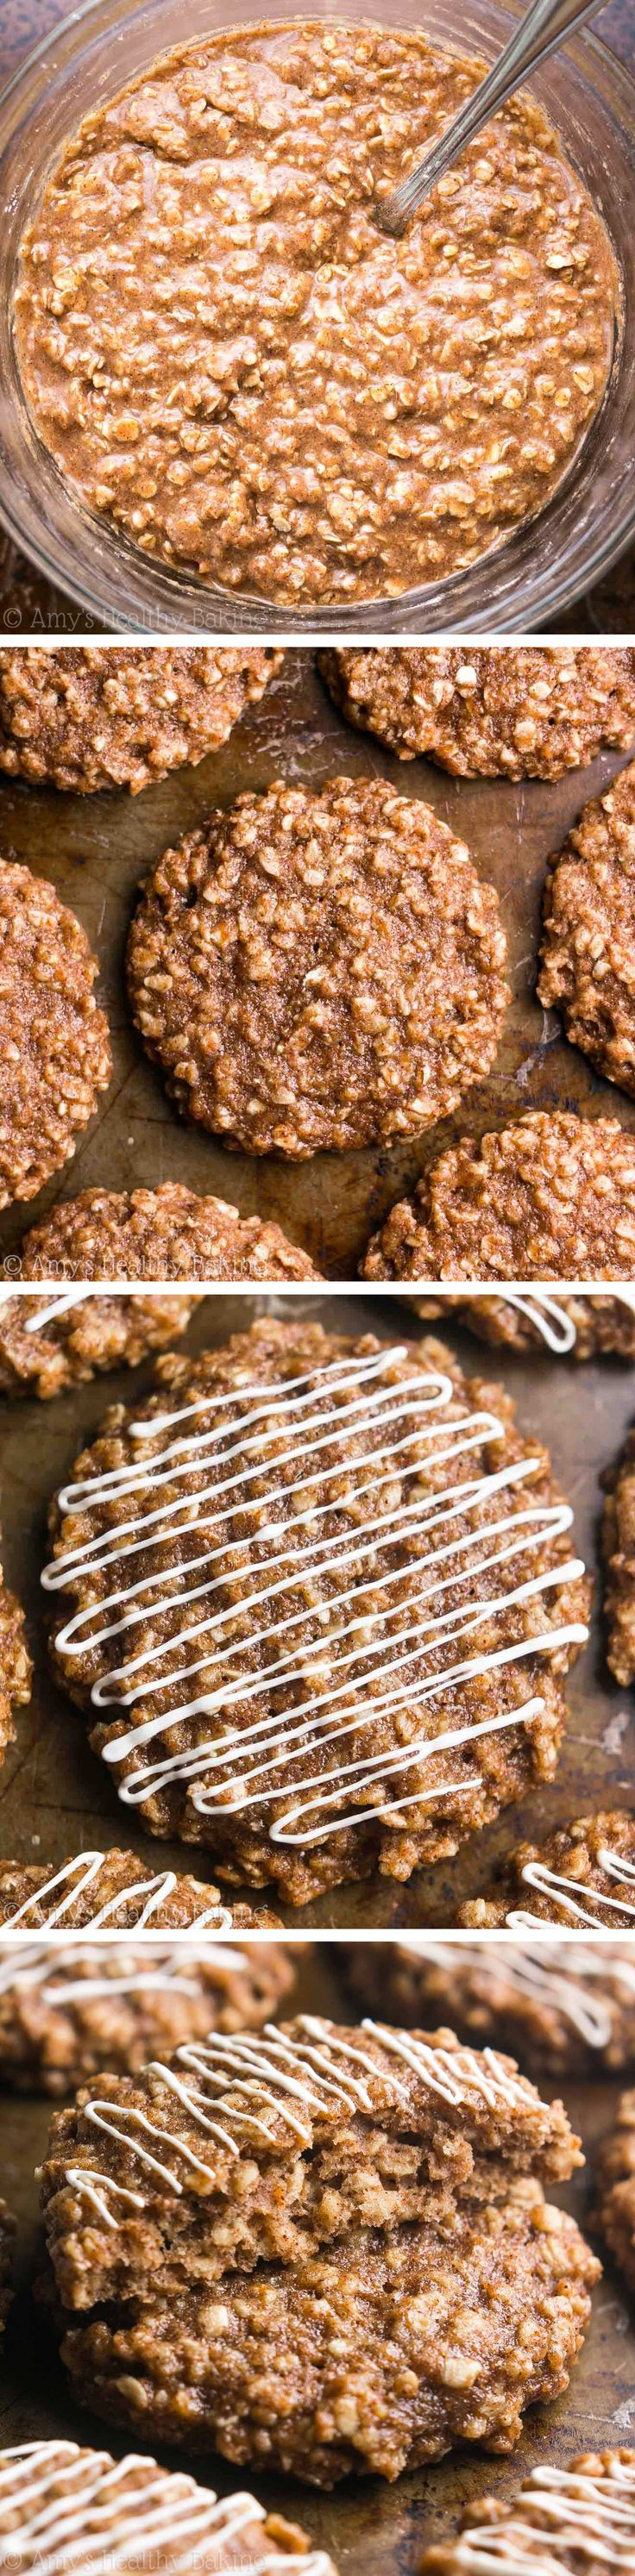 Clean-Eating Cinnamon Roll Cookies -- these look amazing and I think I could sub out the allergens